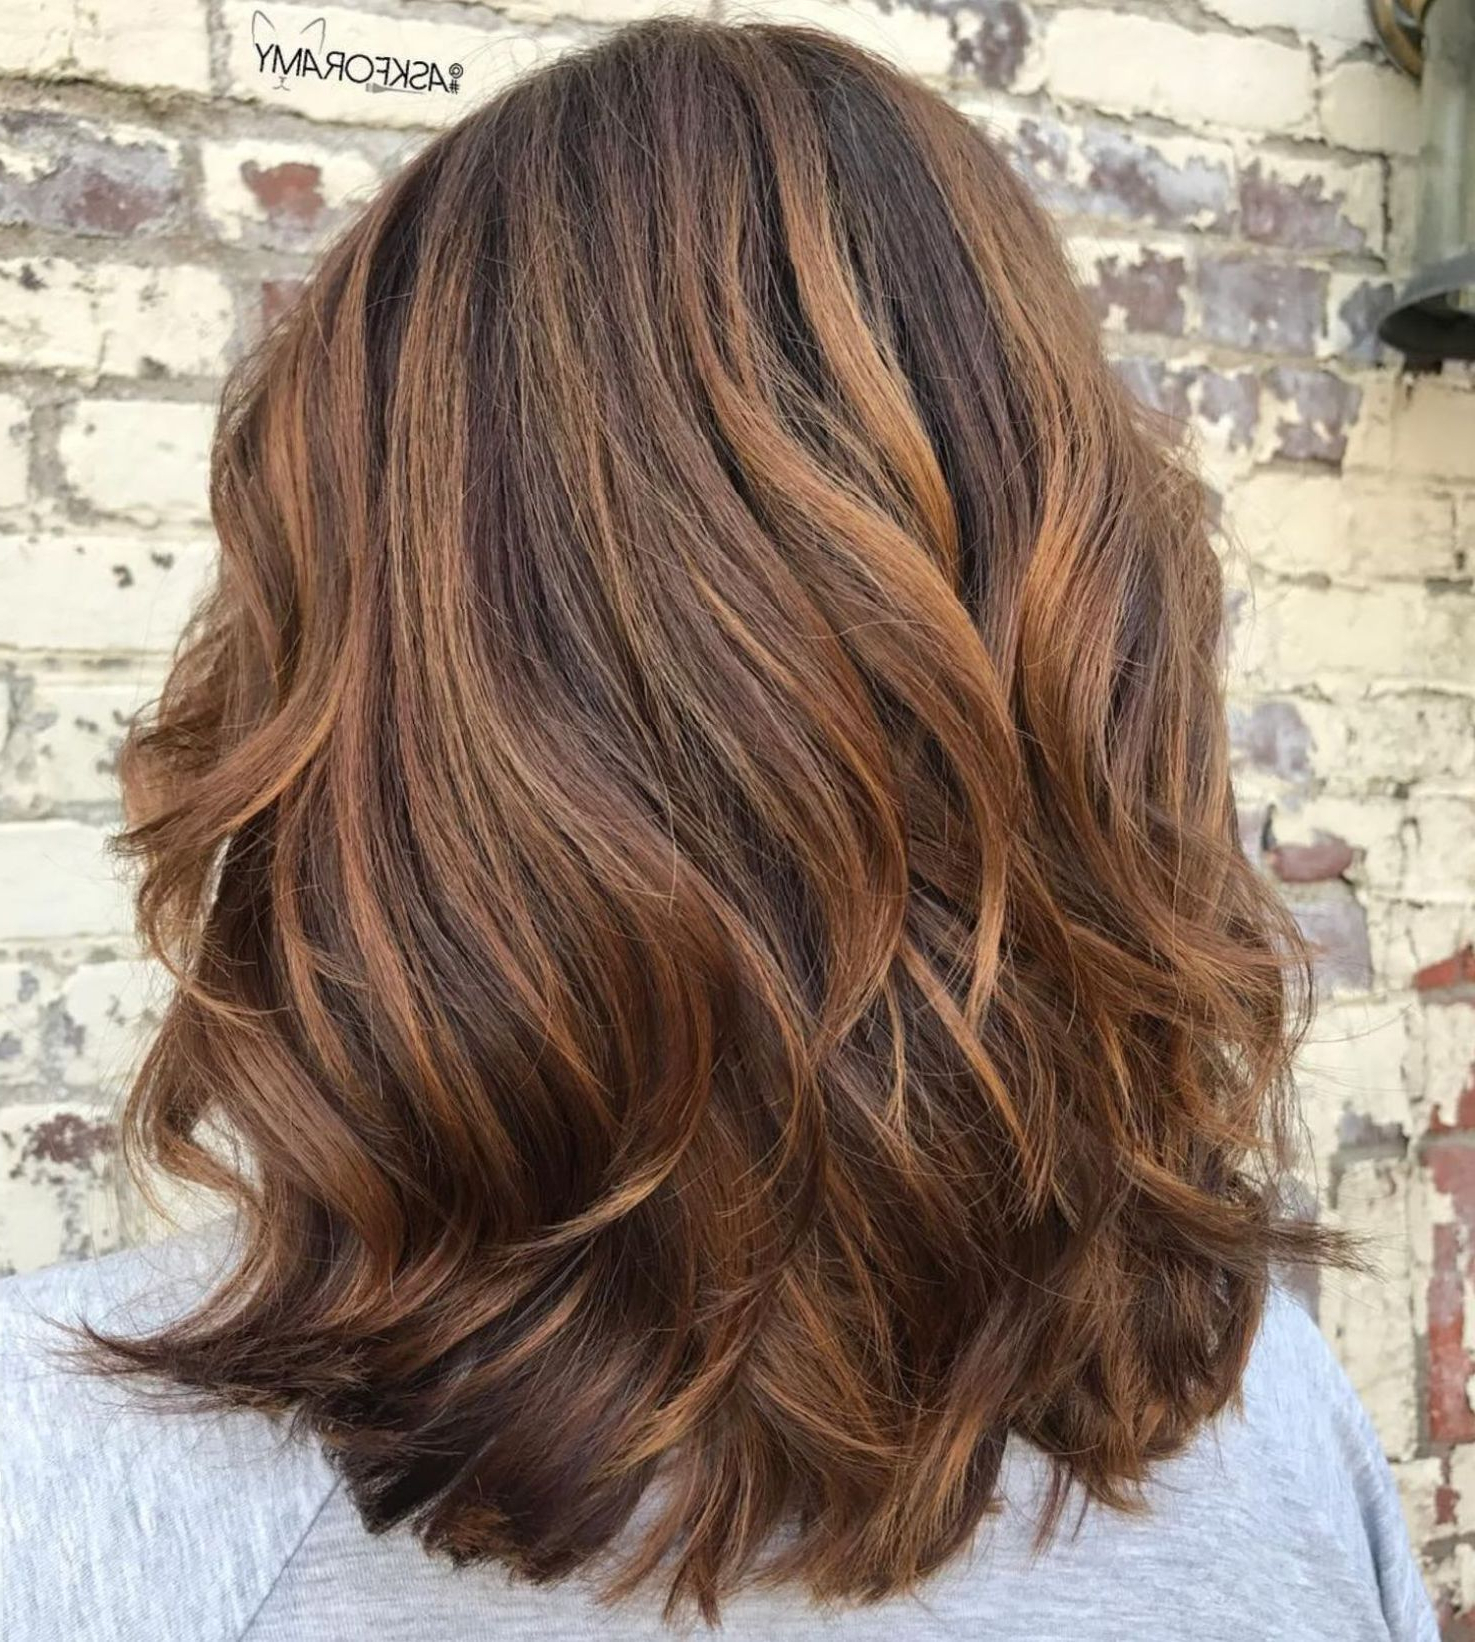 Pin On Beauty & Hairstyles Within Most Recently Released Feathered Golden Brown Haircuts (Gallery 18 of 20)